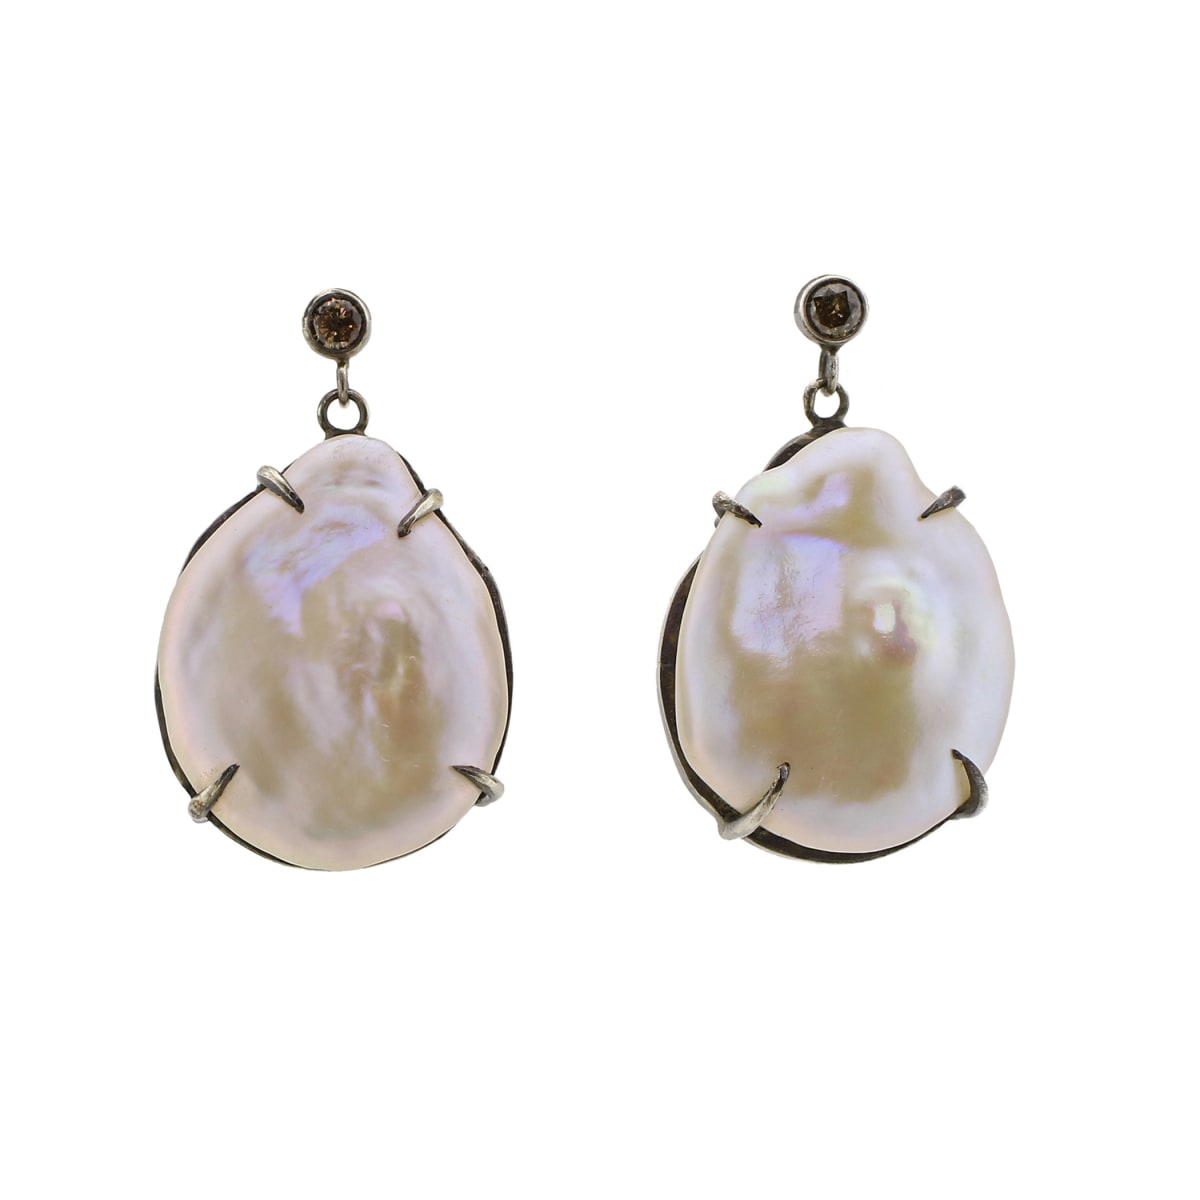 Megan McGaffigan, Baroque Pearl Set I